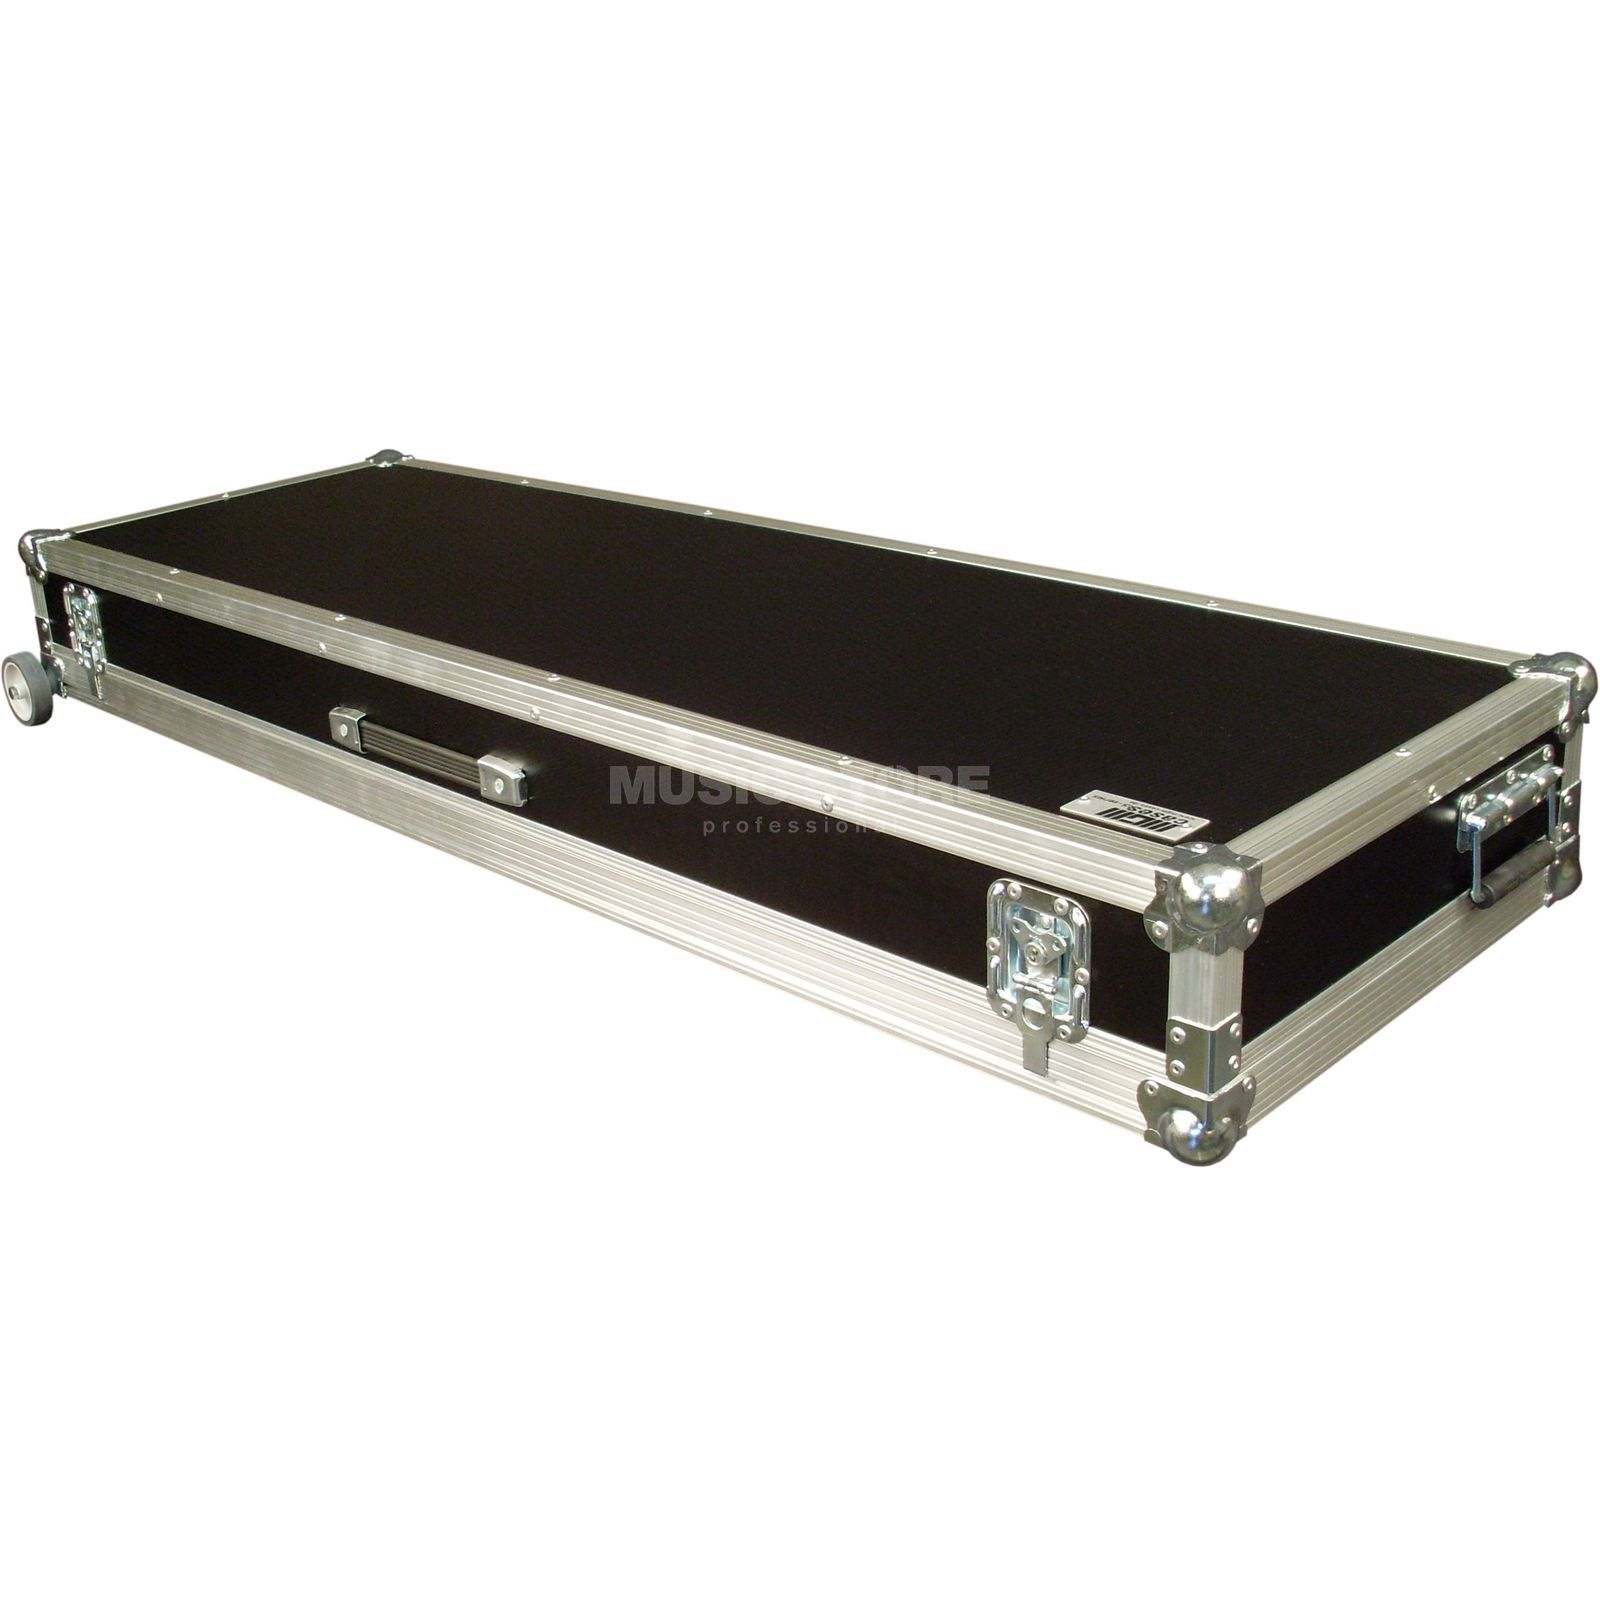 BOXPROFI RS-Case Physisipiano H2-88 Product Image